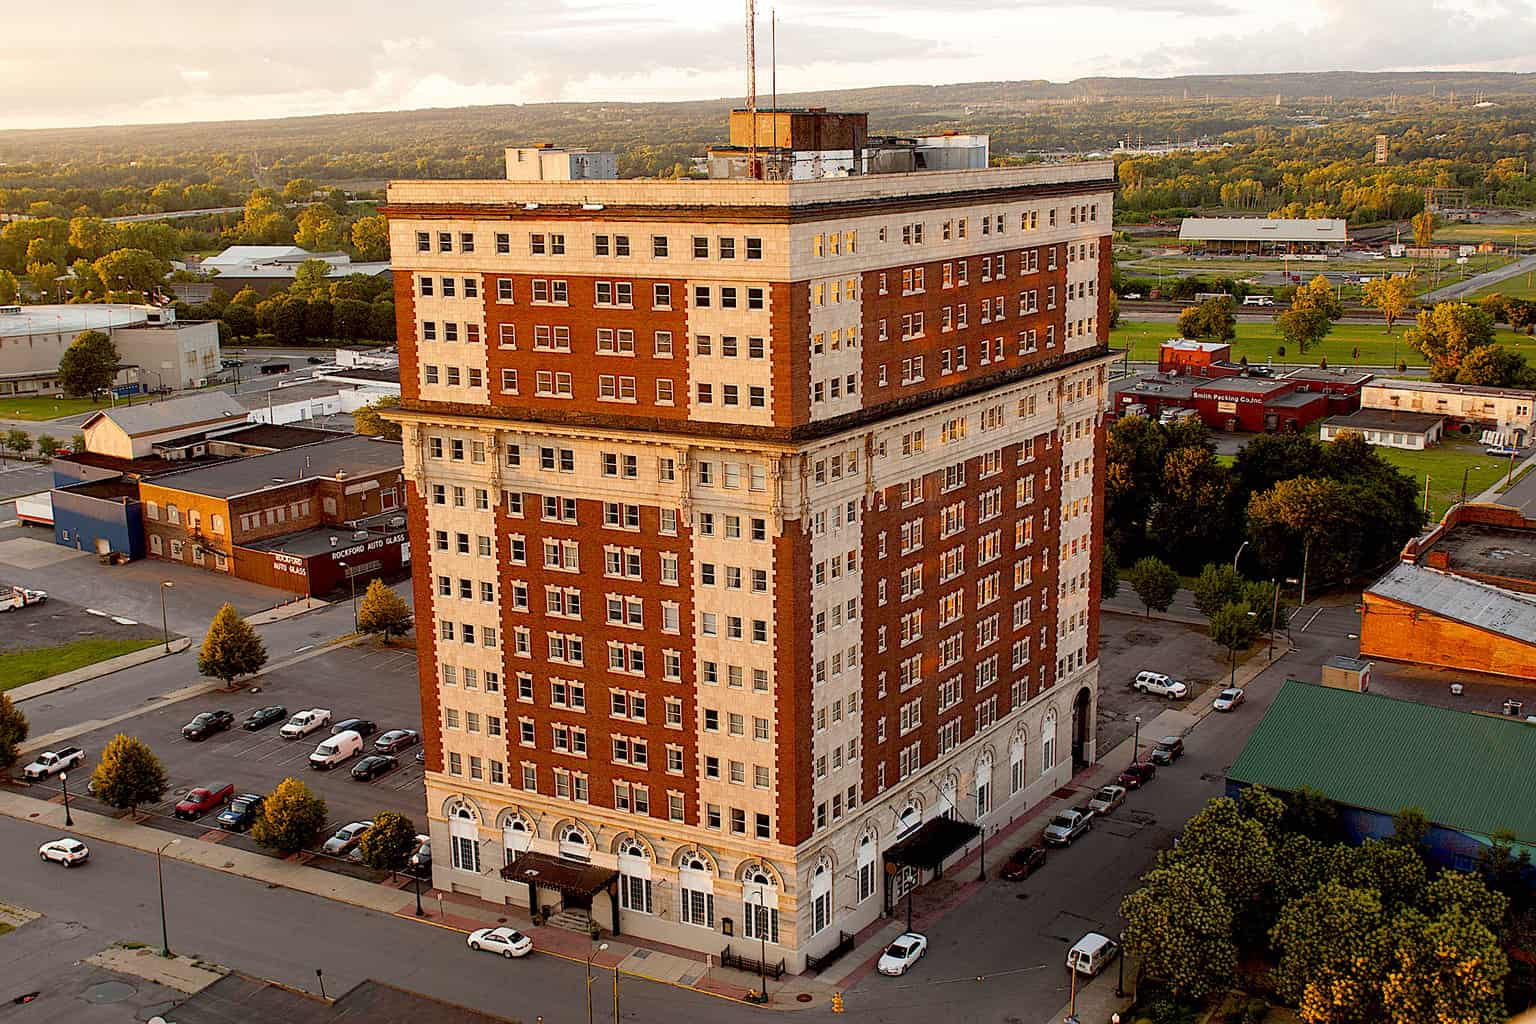 An aerial view of the luxurious Hotel Utica in Utica, NY.